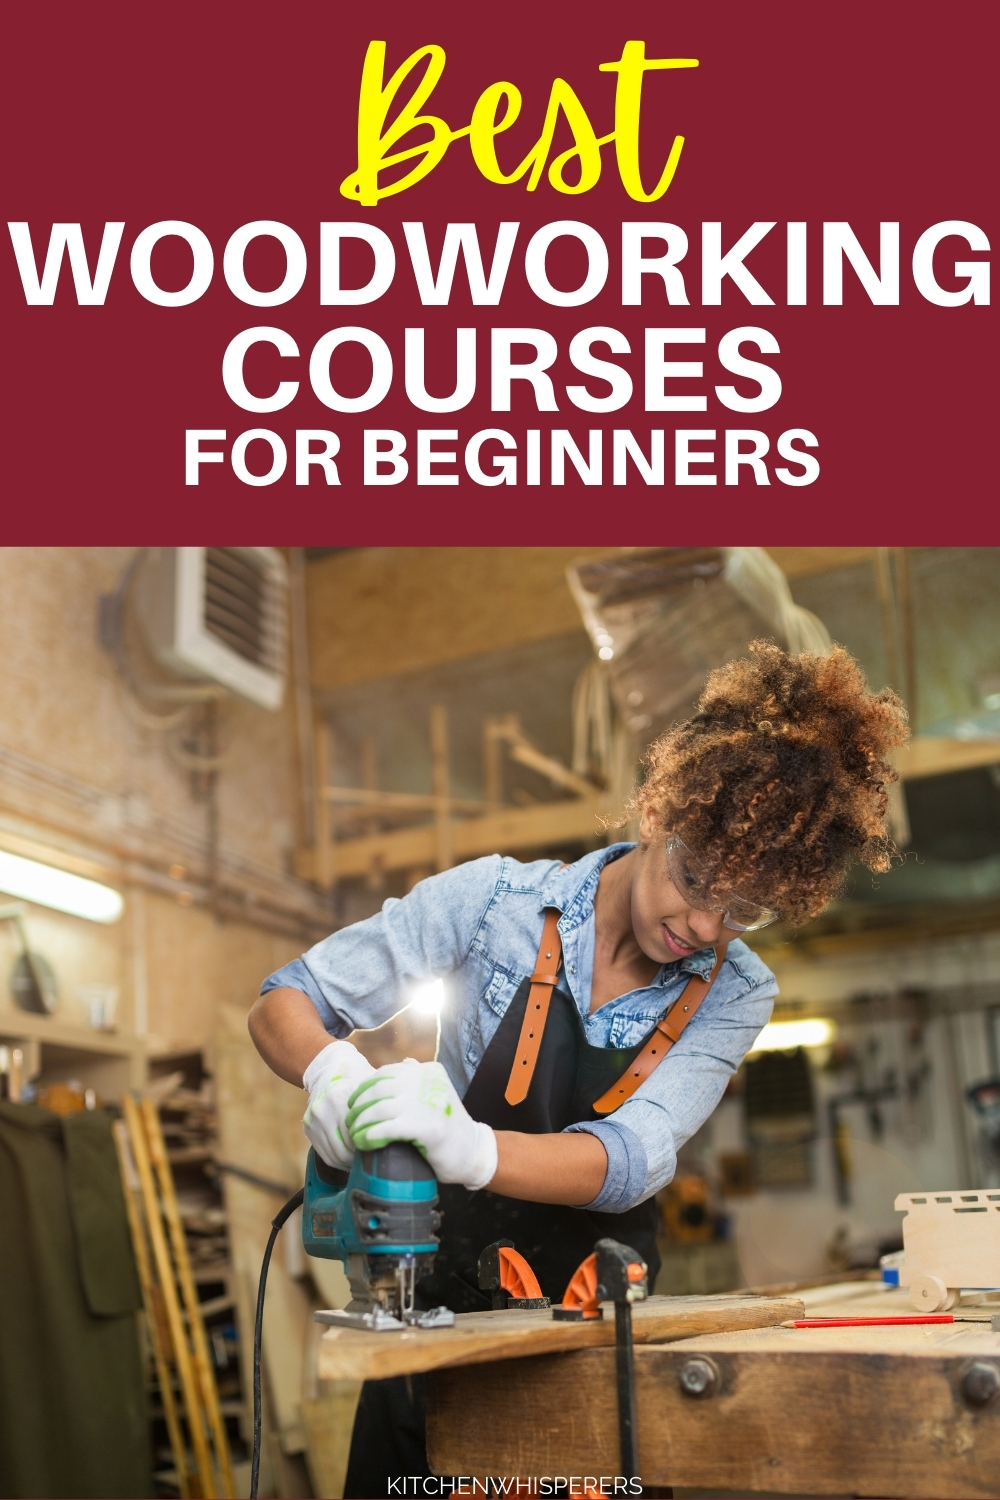 Online Woodworking Courses For Beginners (1)